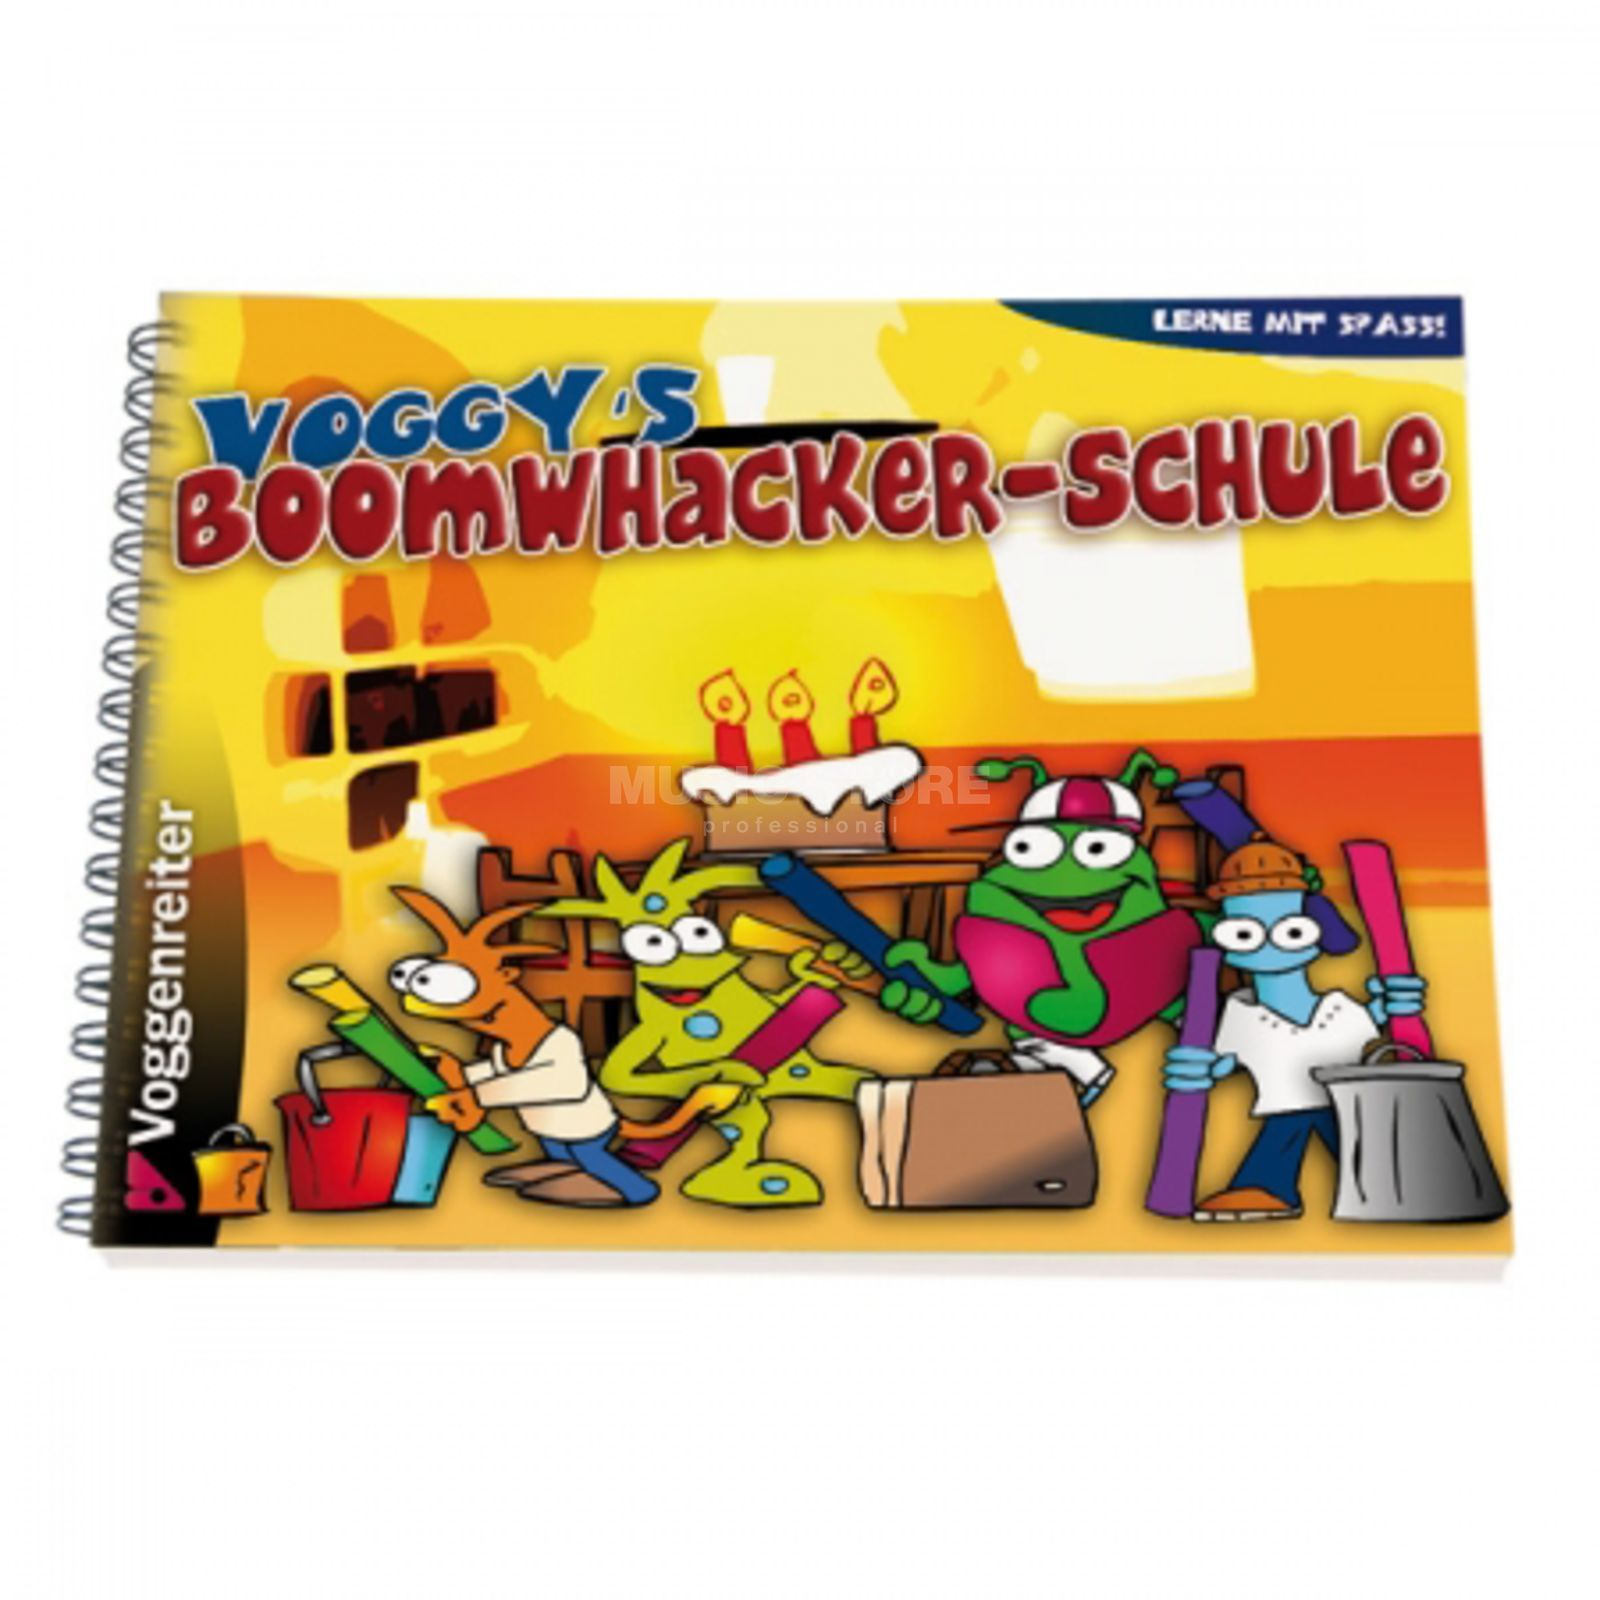 Voggenreiter Voggy's Boomwhakers-Schule Andreas von Hoff, Buch/CD Product Image